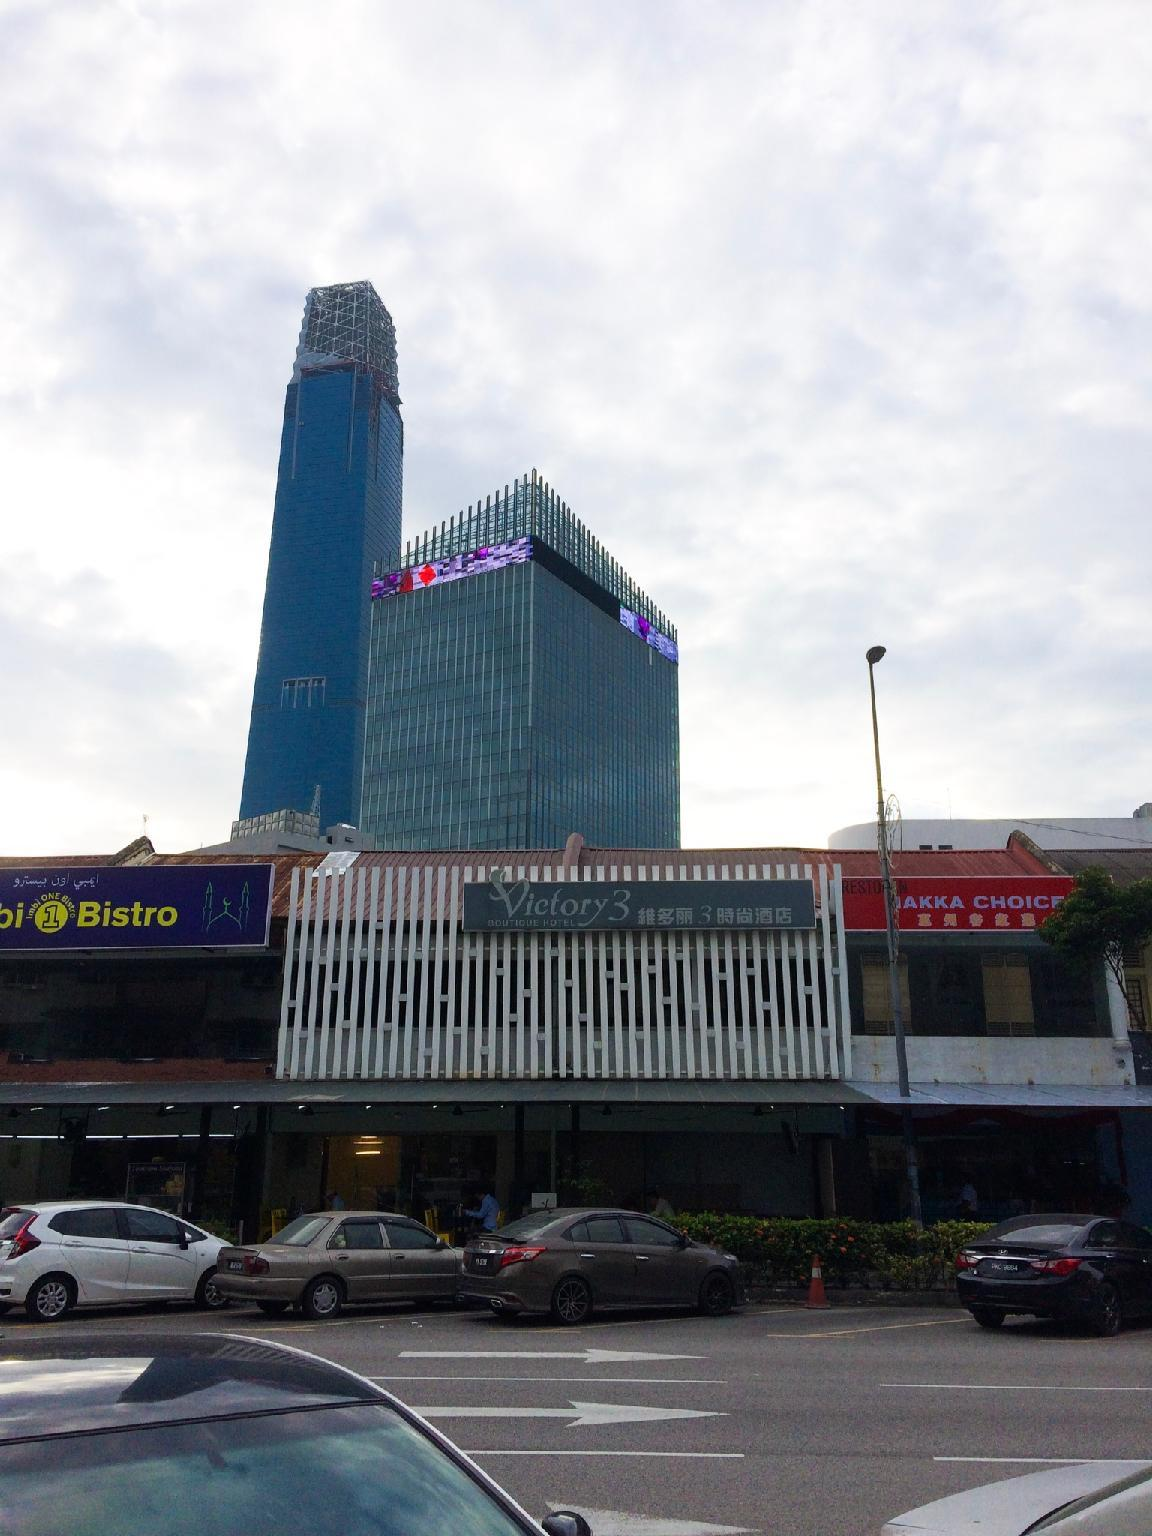 Victory 3 Hotel In Malaysia